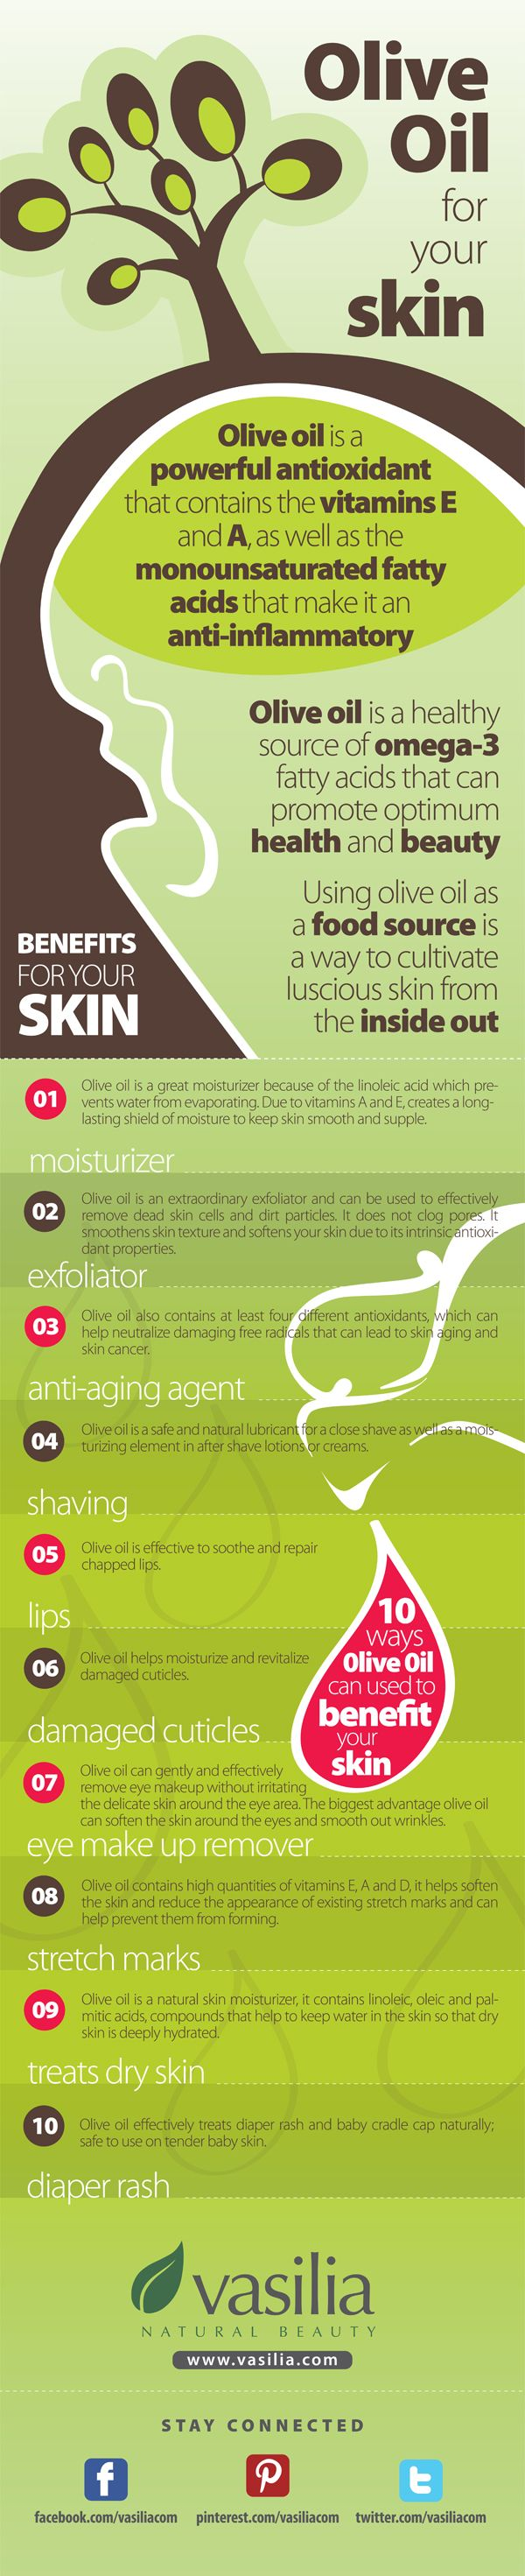 Olive oil for your skin | NerdGraph Infographics